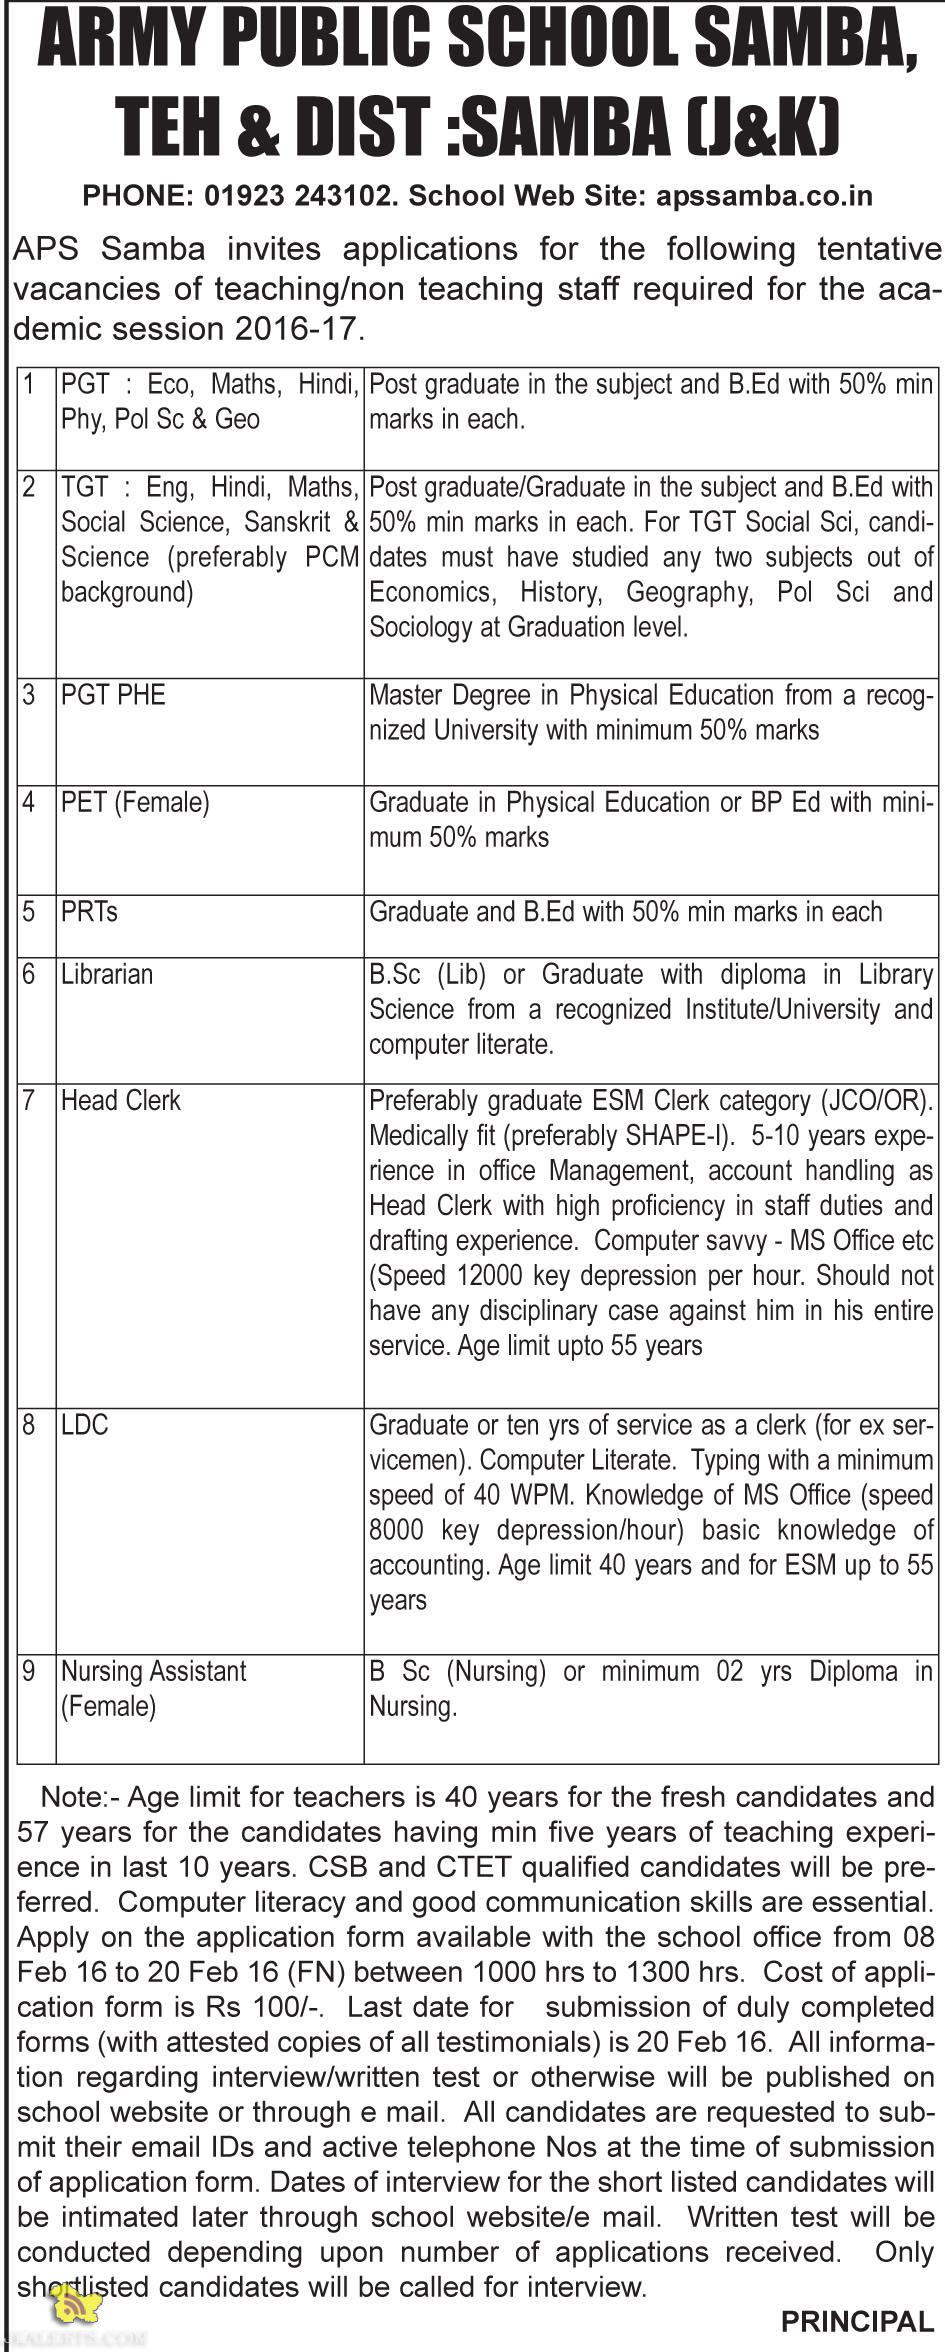 TEACHING JOBS IN ARMY PUBLIC SCHOOL SAMBA, TEH & DIST SAMBA